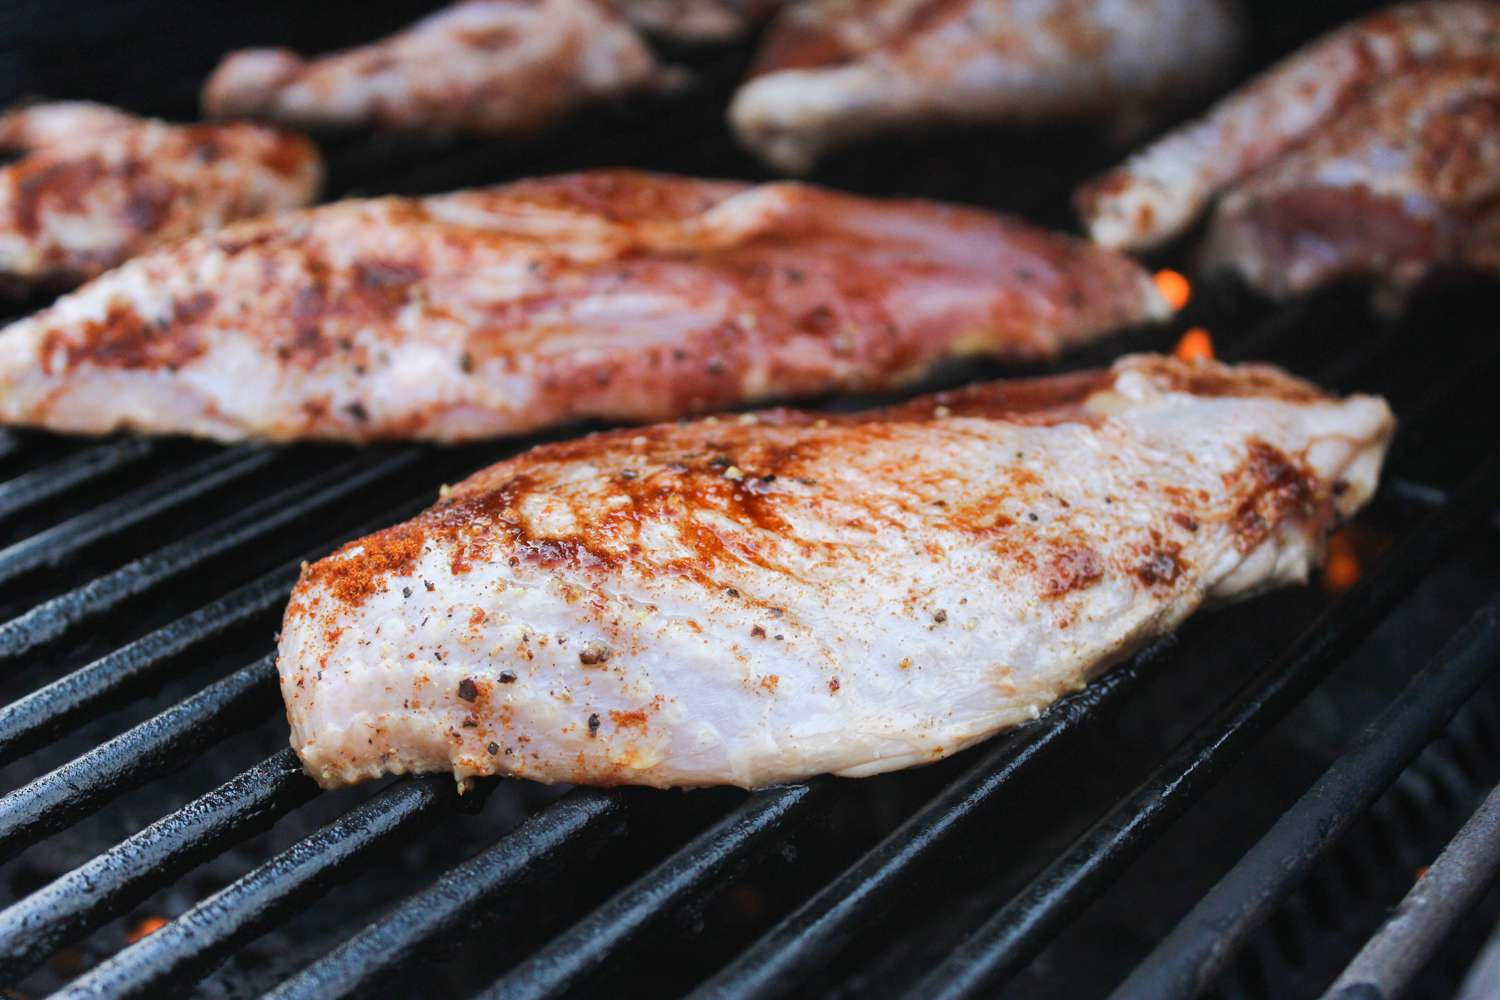 Pheasant on grill